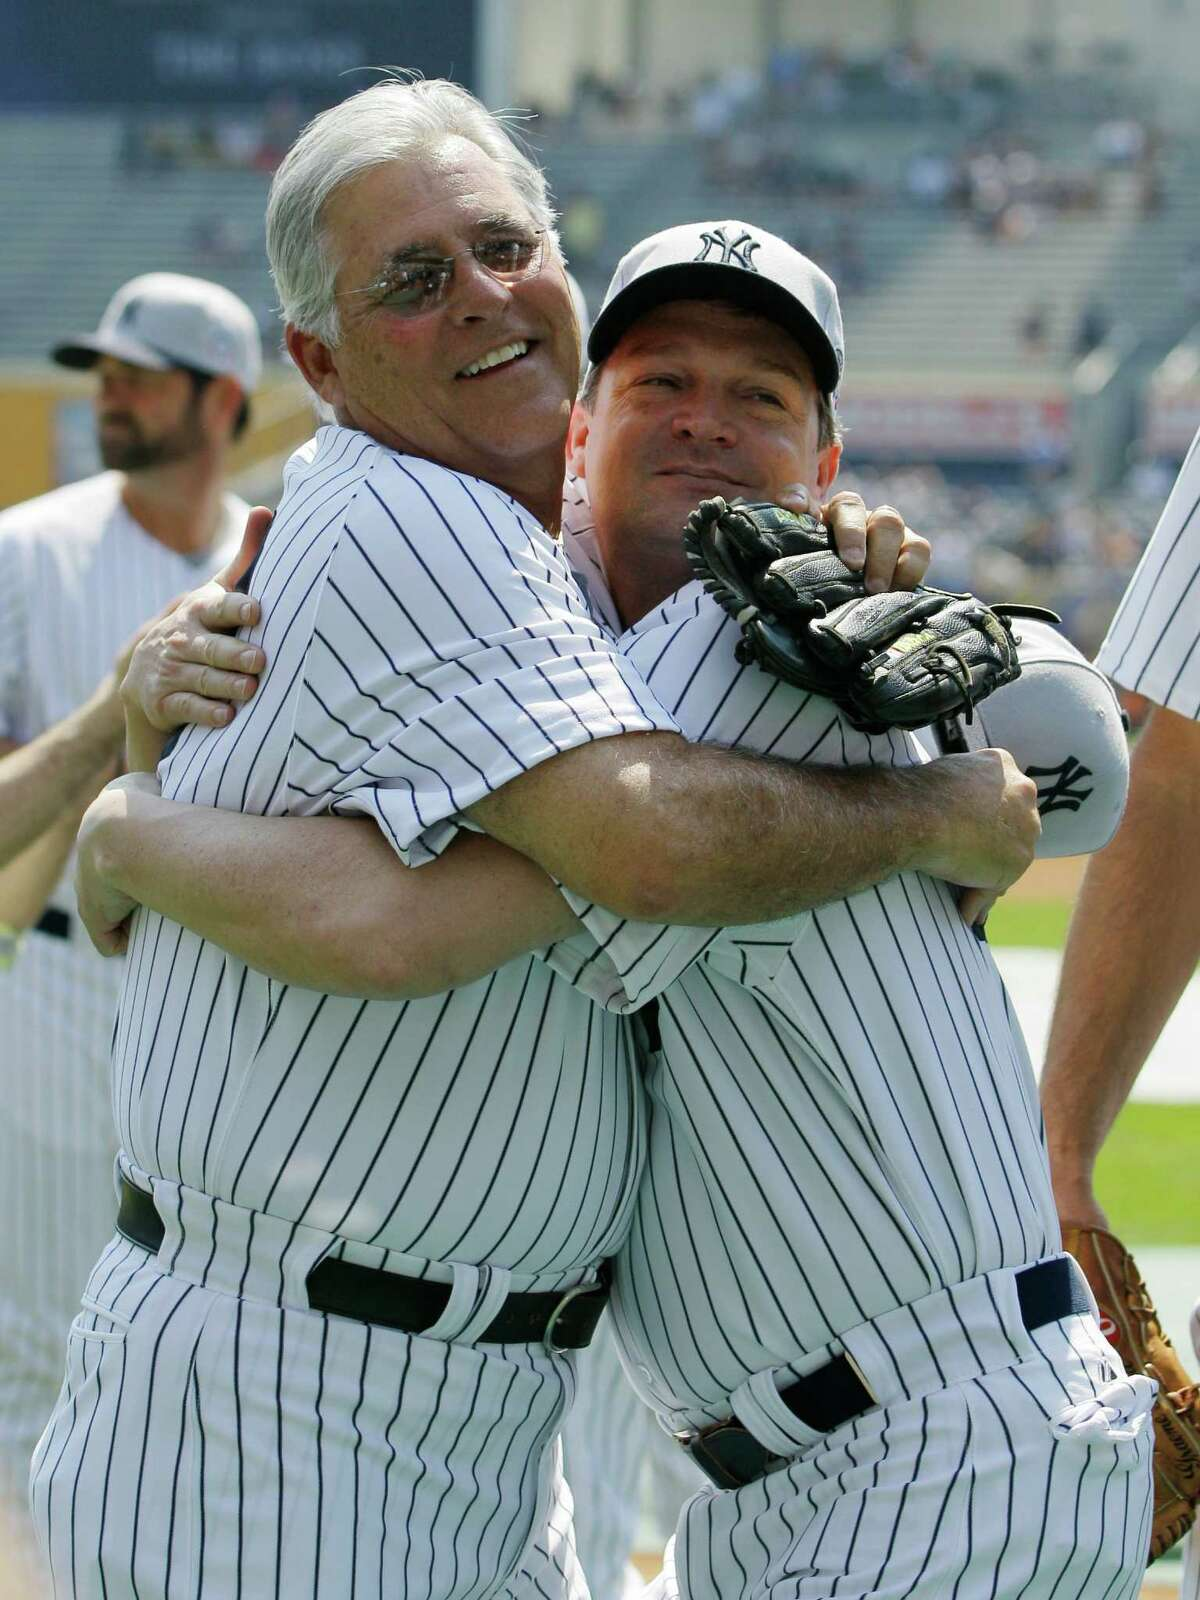 Former New York Yankees player Bucky Dent, left, and Pat Kelly embrace during Yankees Old Timers Day at Yankee Stadium in New York, Sunday, July 1, 2012.